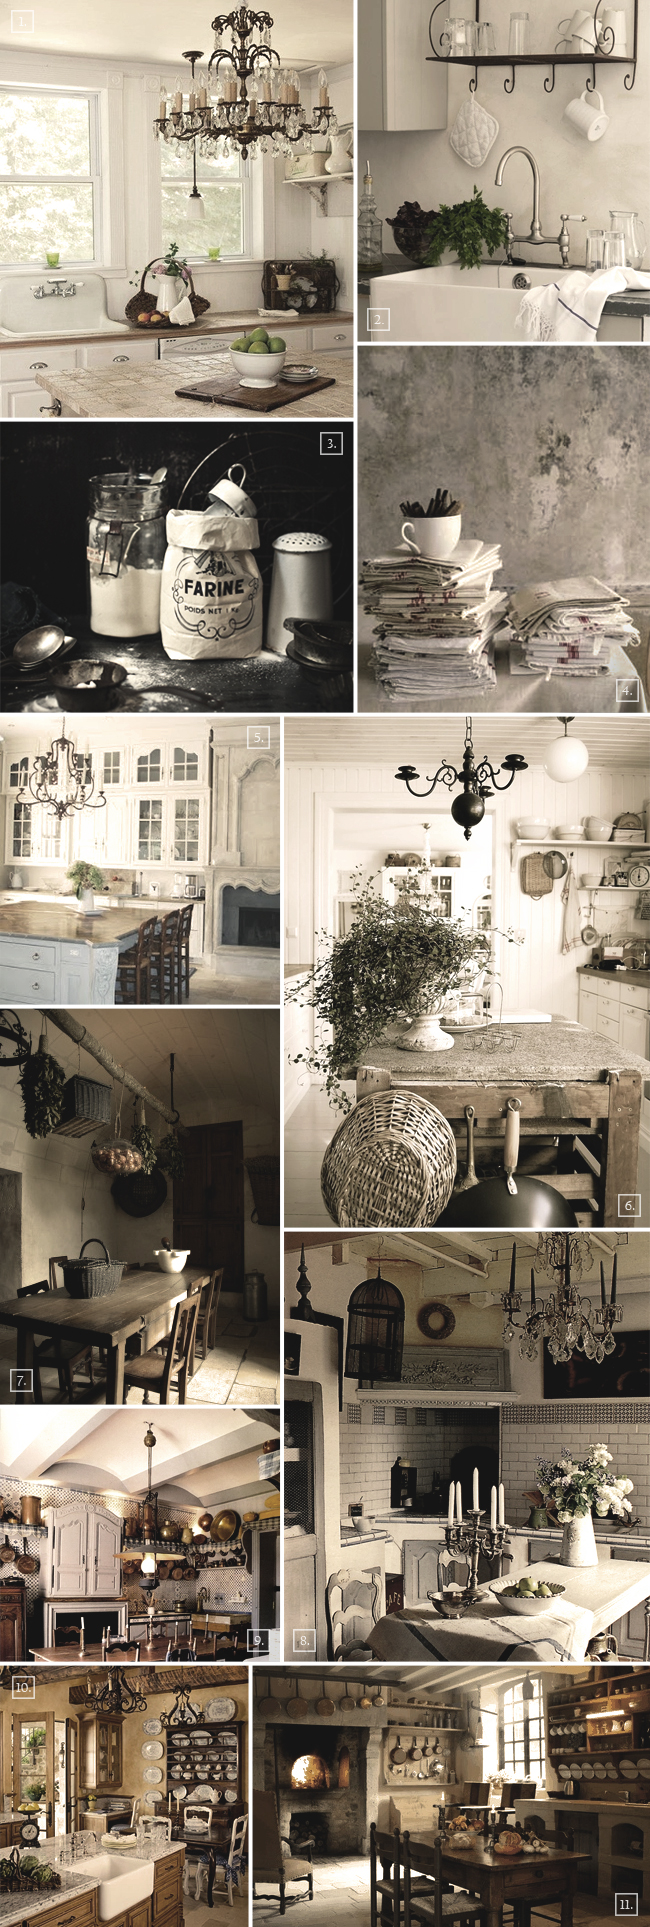 French kitchen decor and designs mood board home tree atlas - French style kitchen decor ...